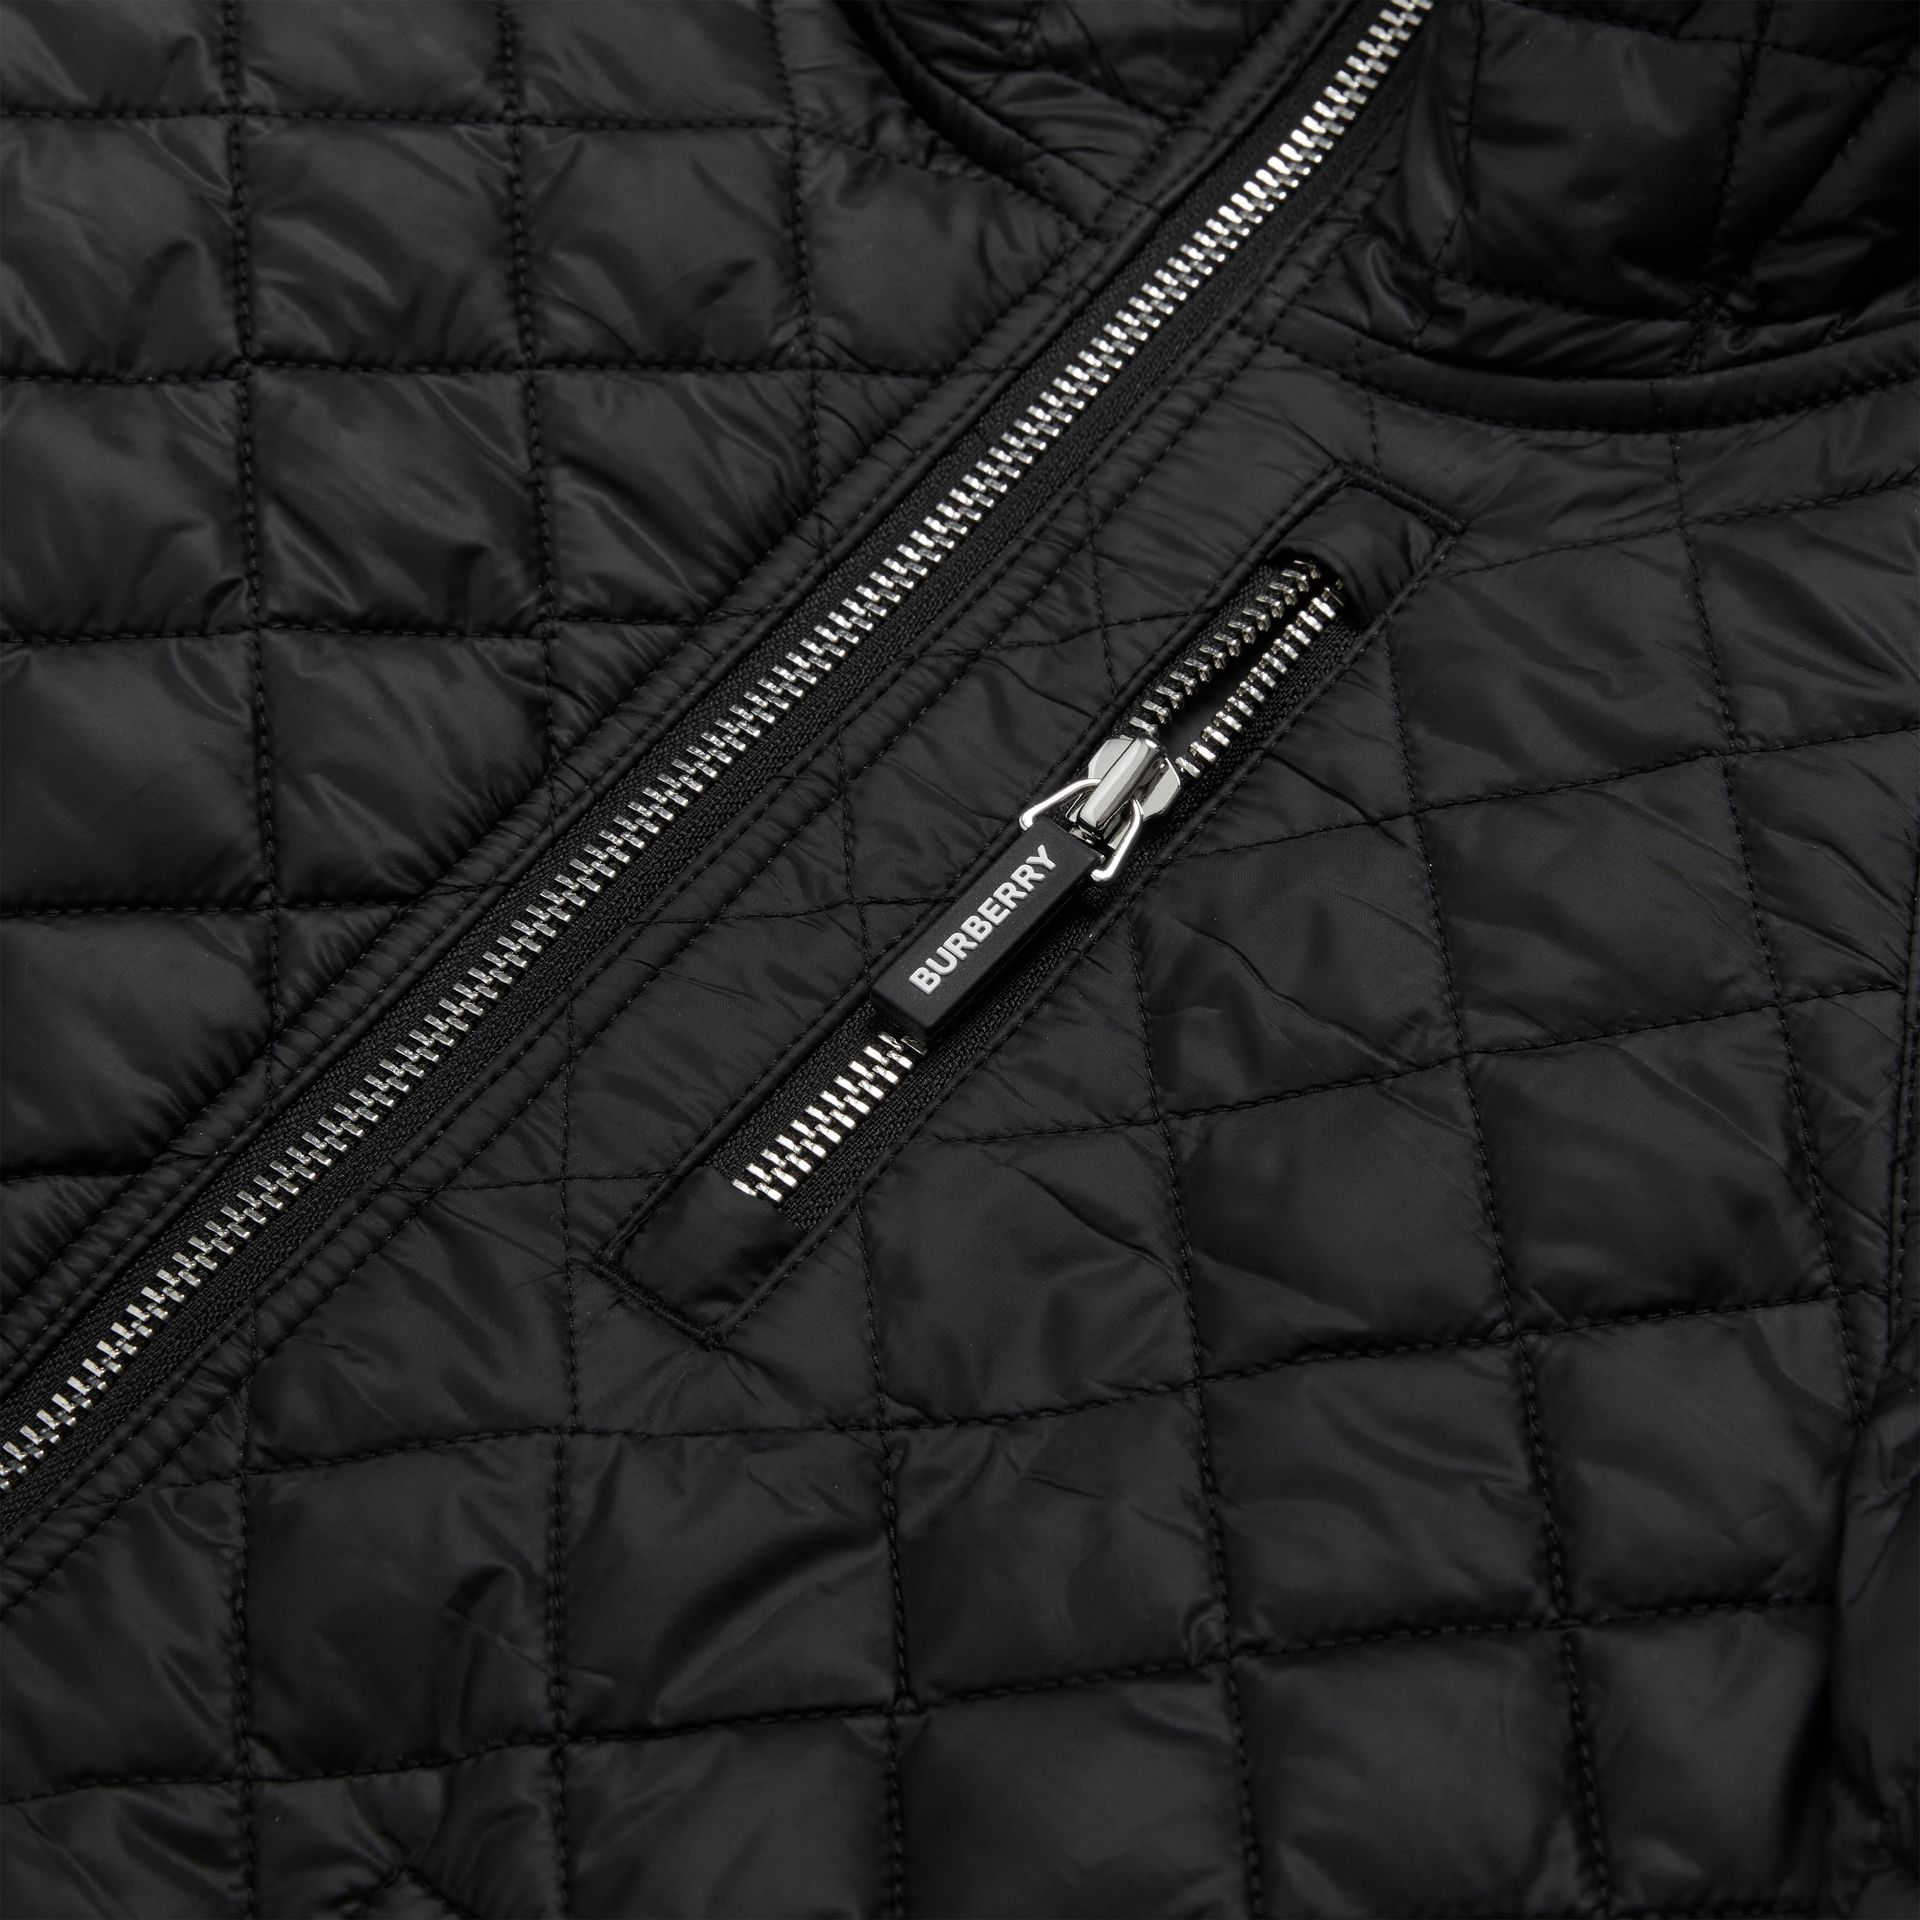 Diamond Quilted Hooded Coat in Black | Burberry Australia - gallery image 1